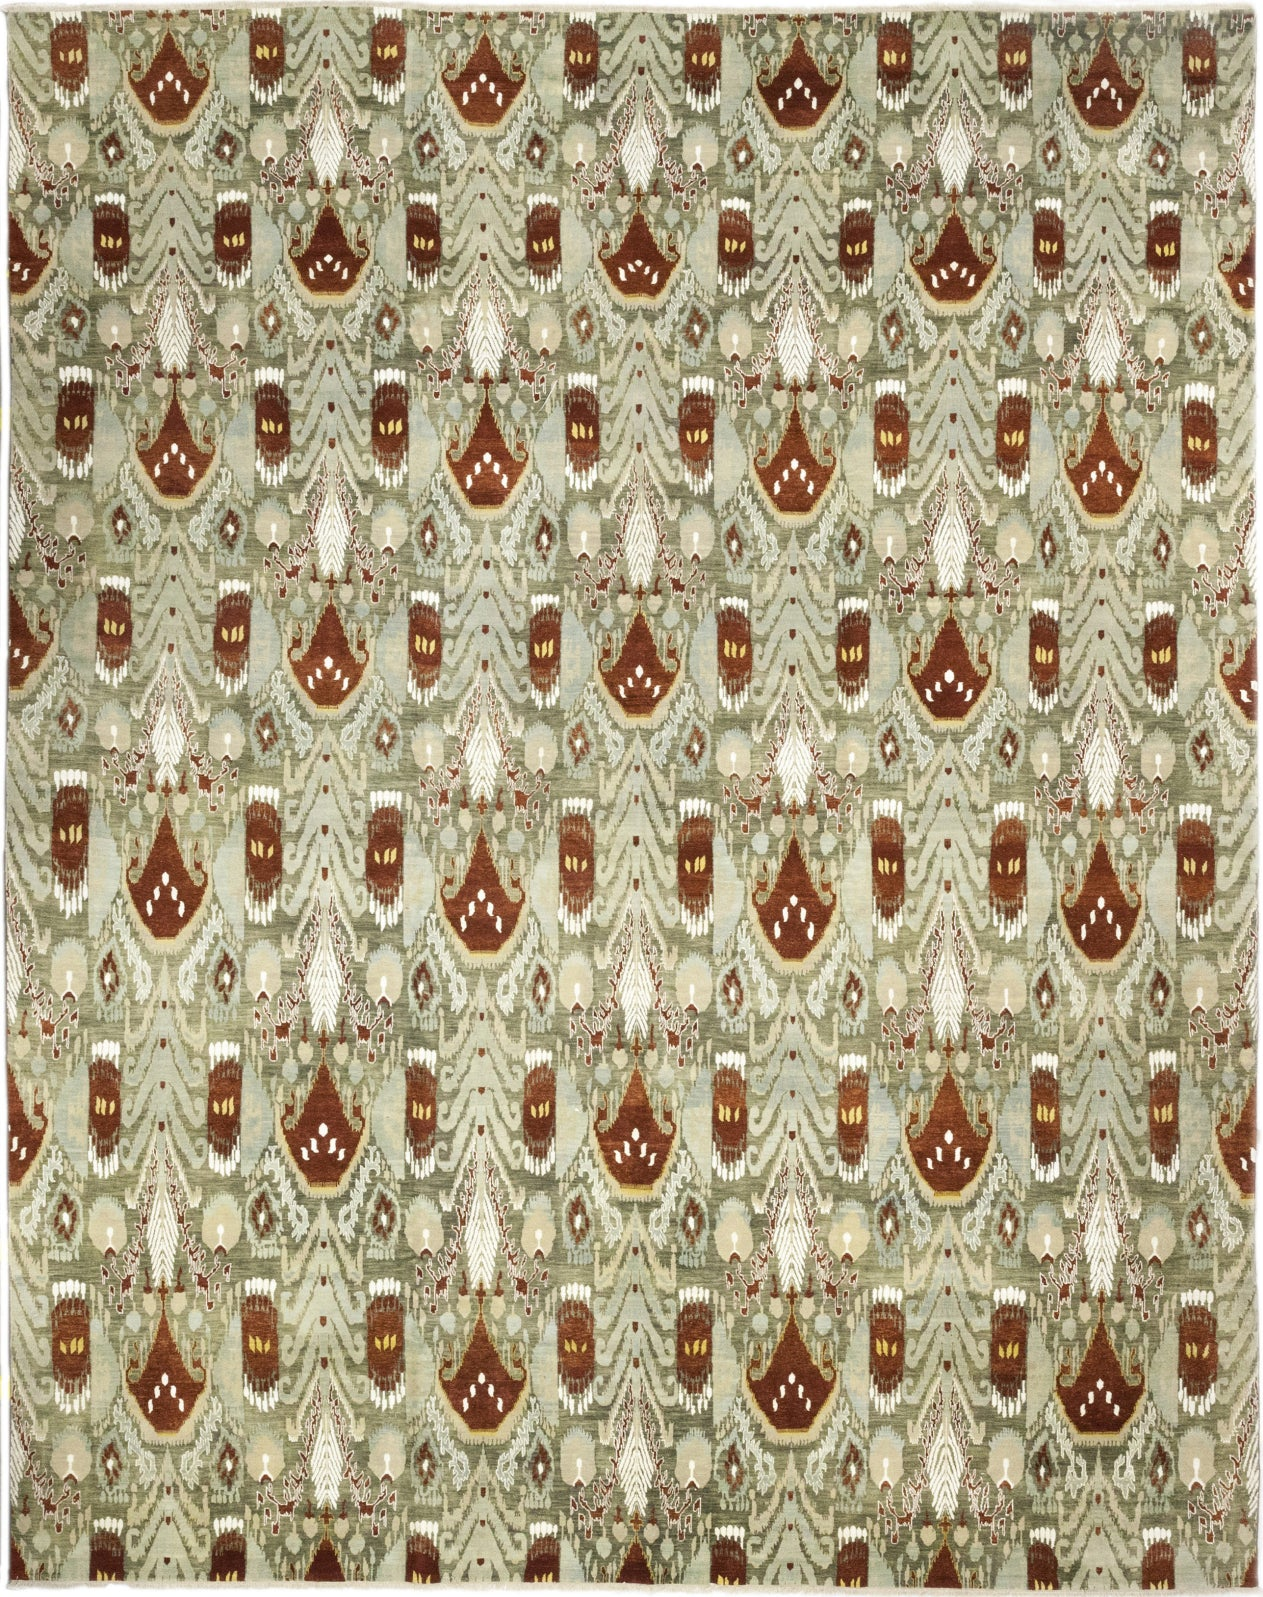 Solo Rugs Ikat M6011-26 Olive Area Rug main image